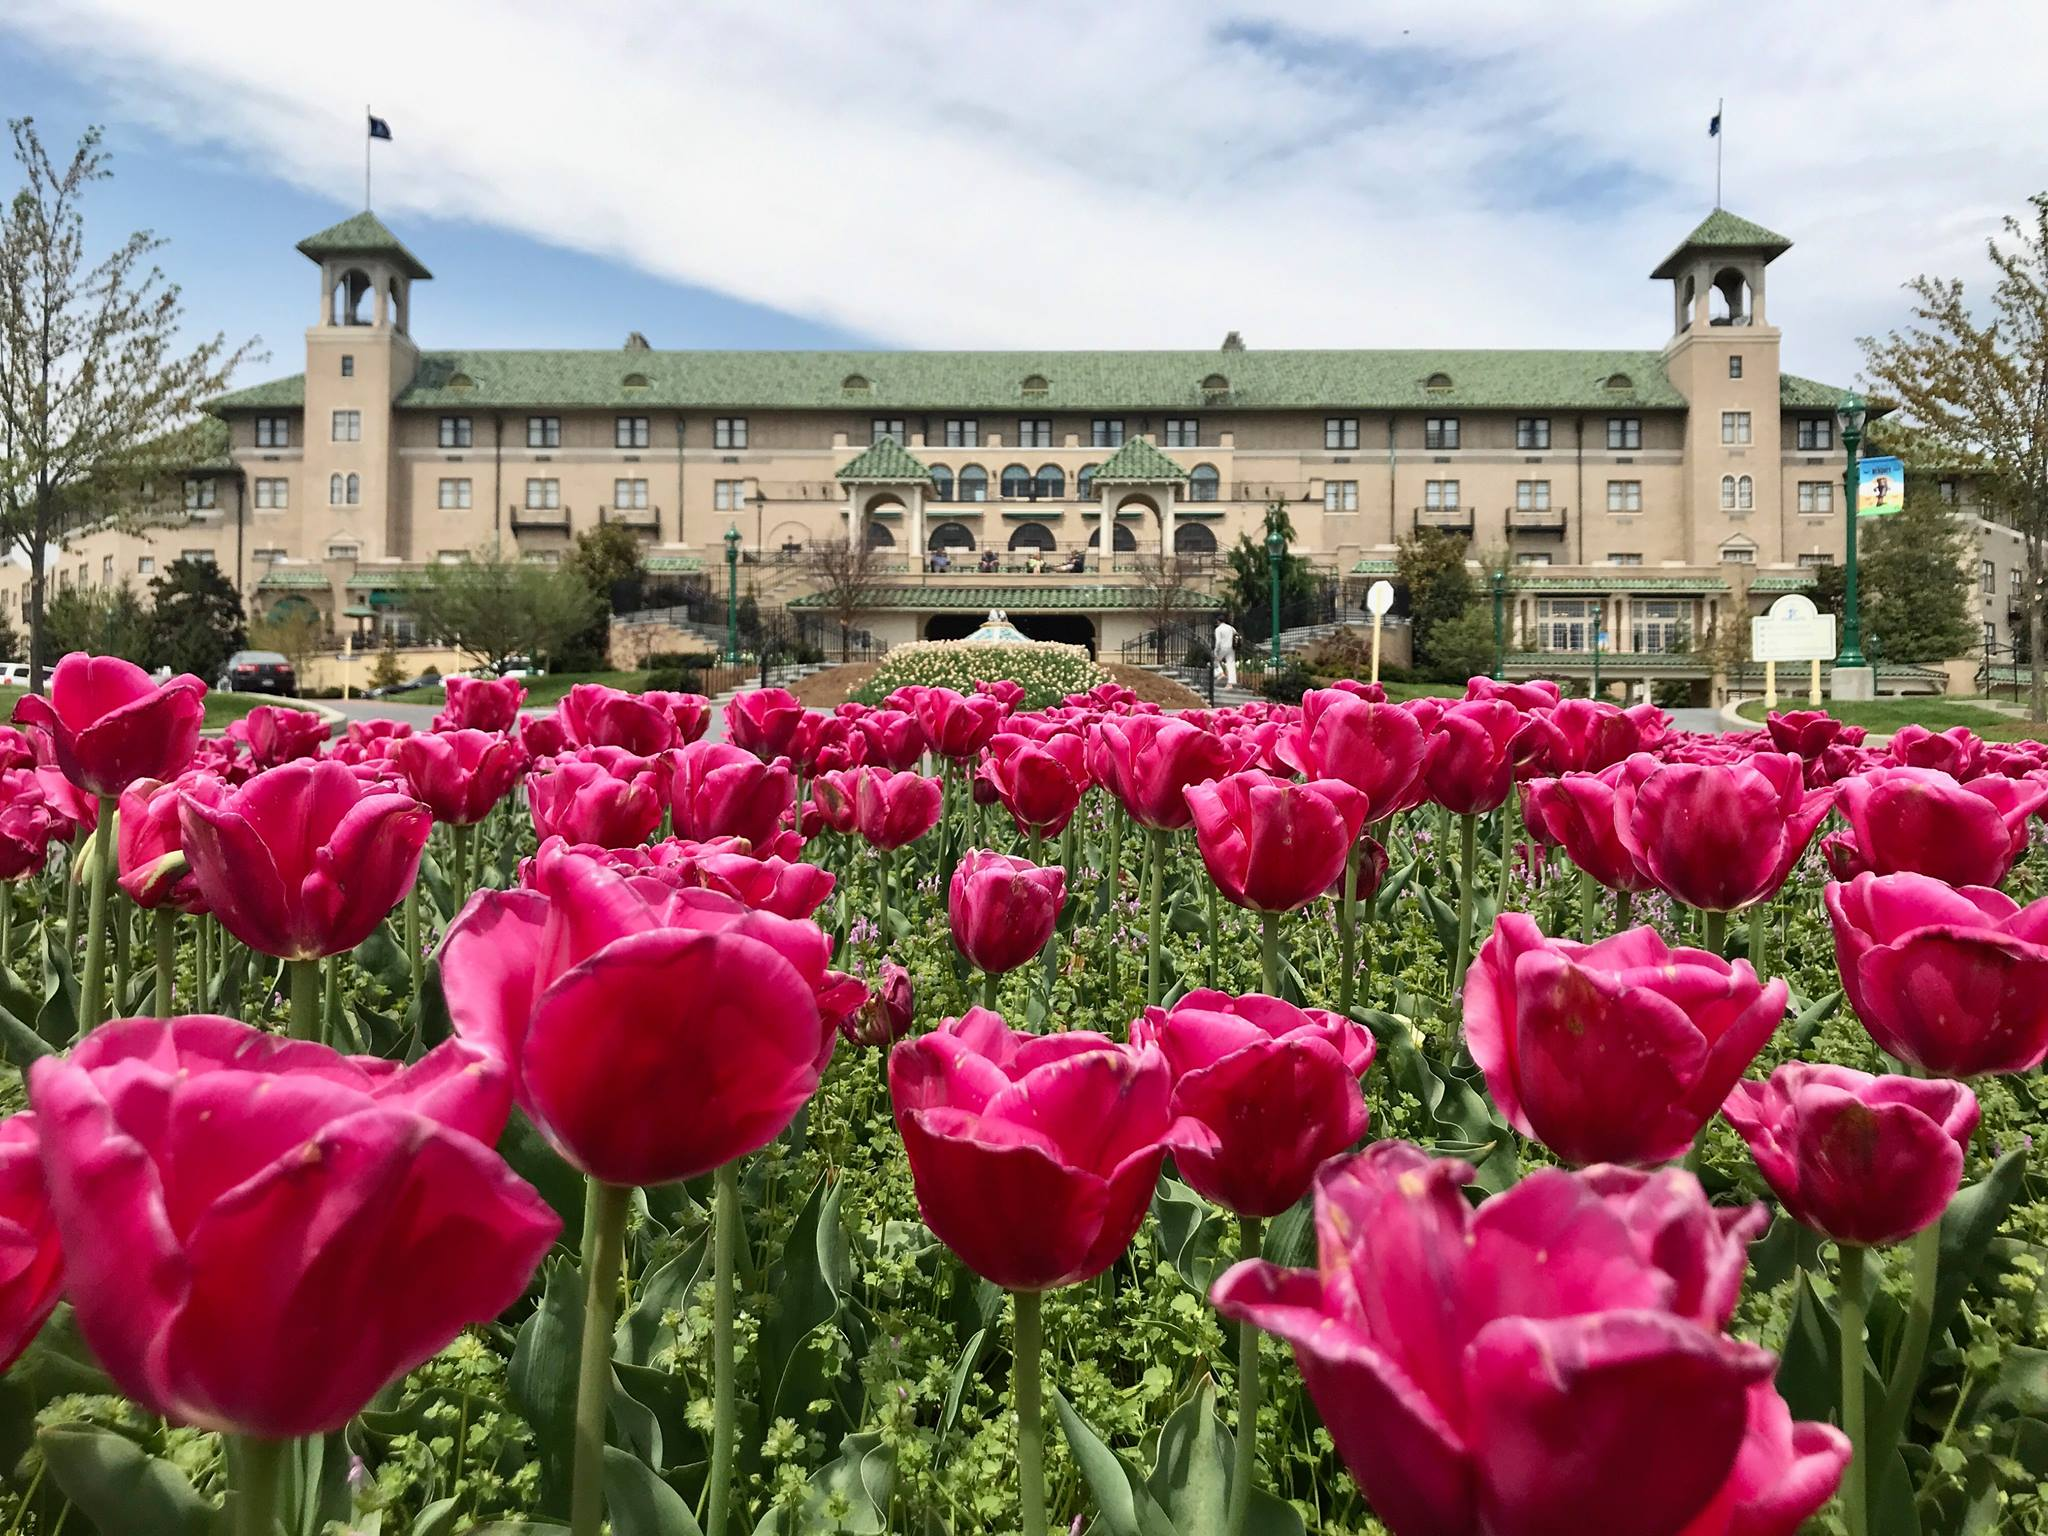 The Hotel Hershey in springtime with flowers in bloom, Hershey, Pennsylvania